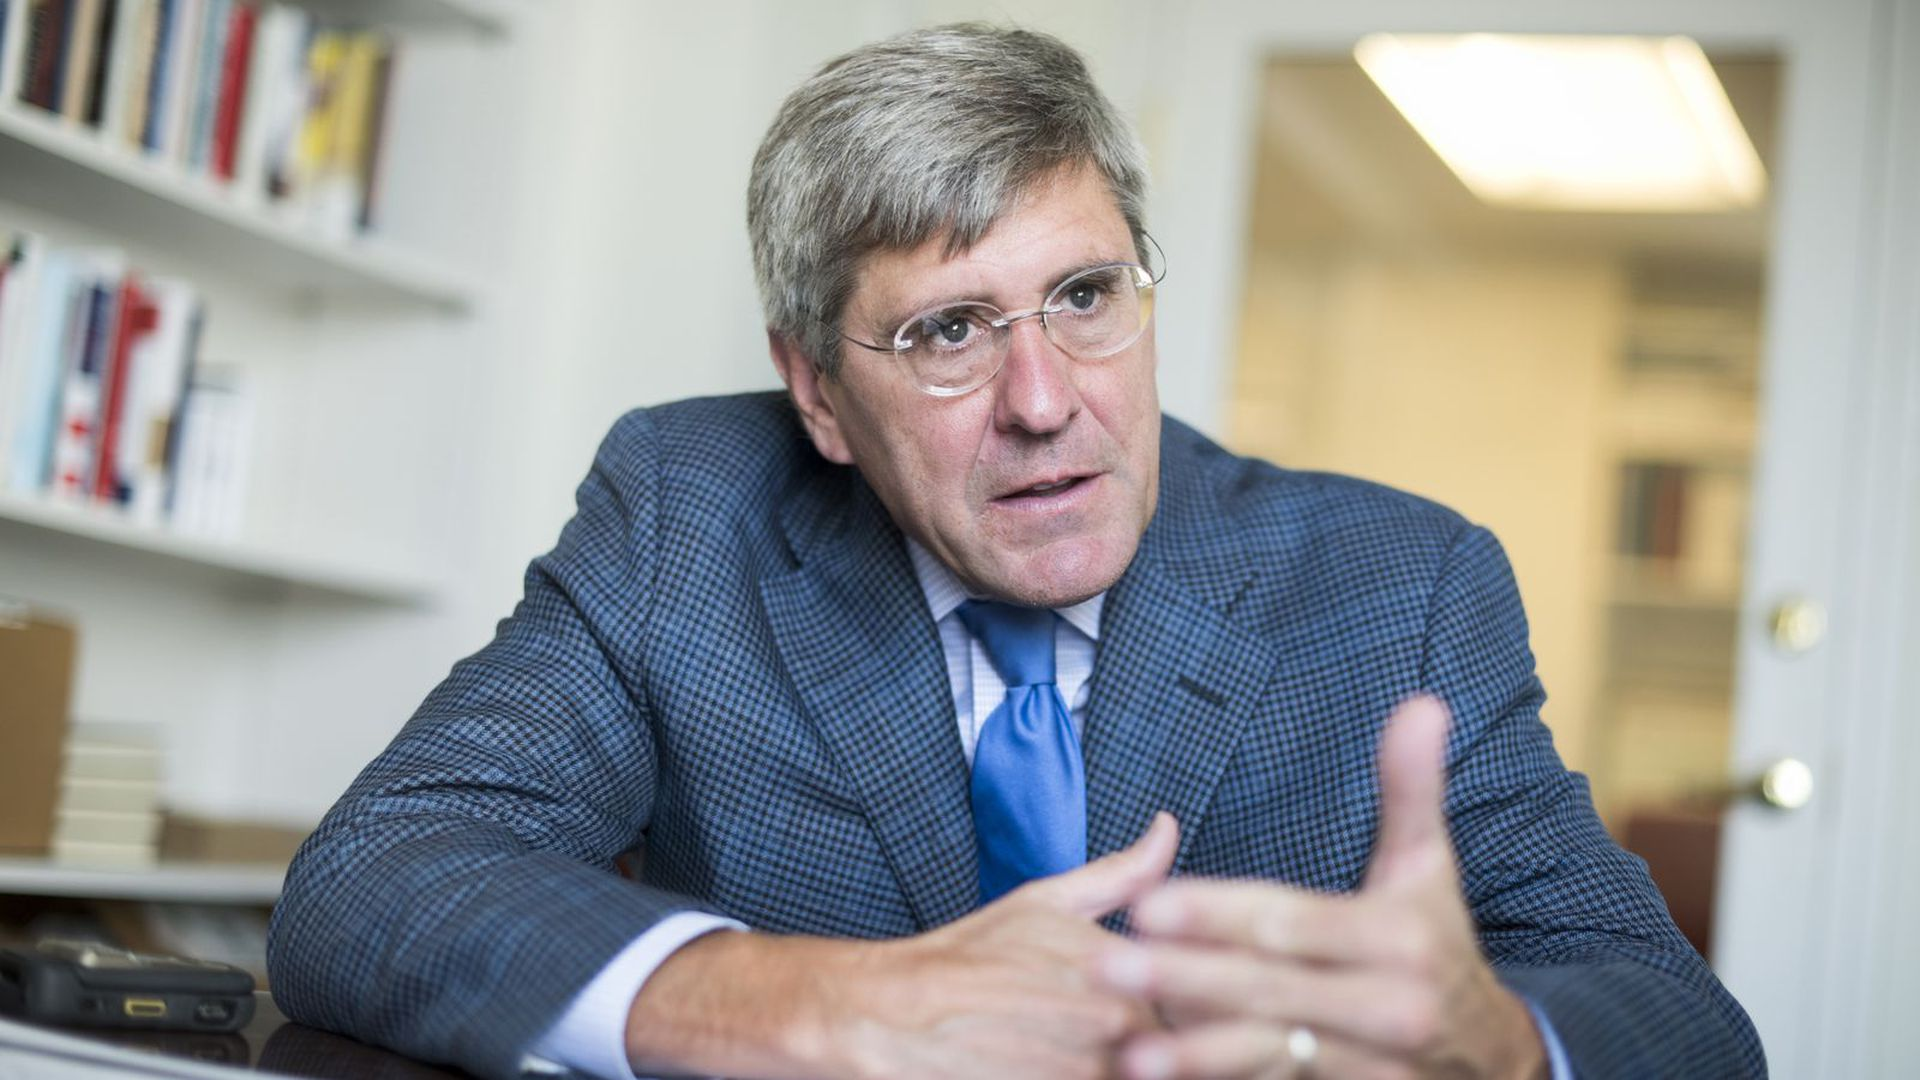 Stephen Moore has apologized for his controversial comments.